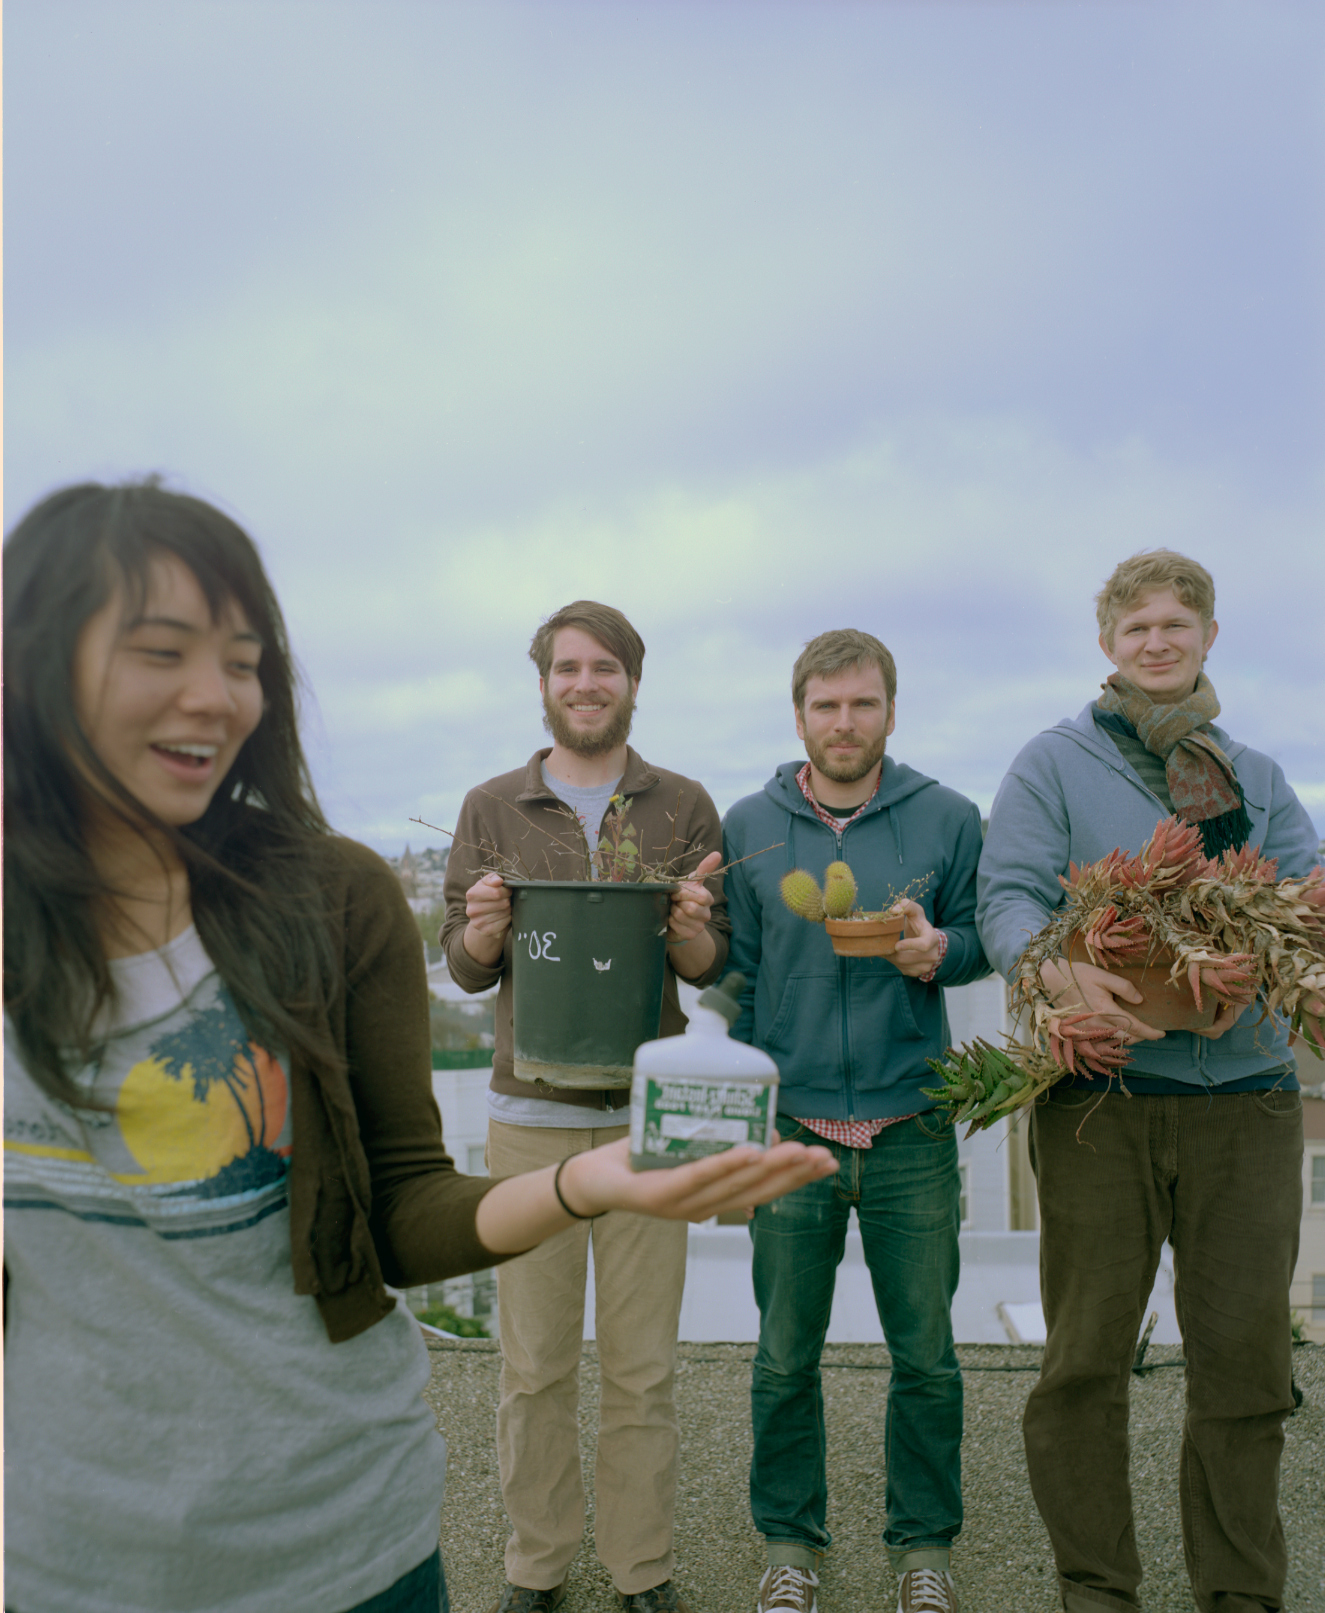 Thao and the Get Down Stay Down get up on the roof